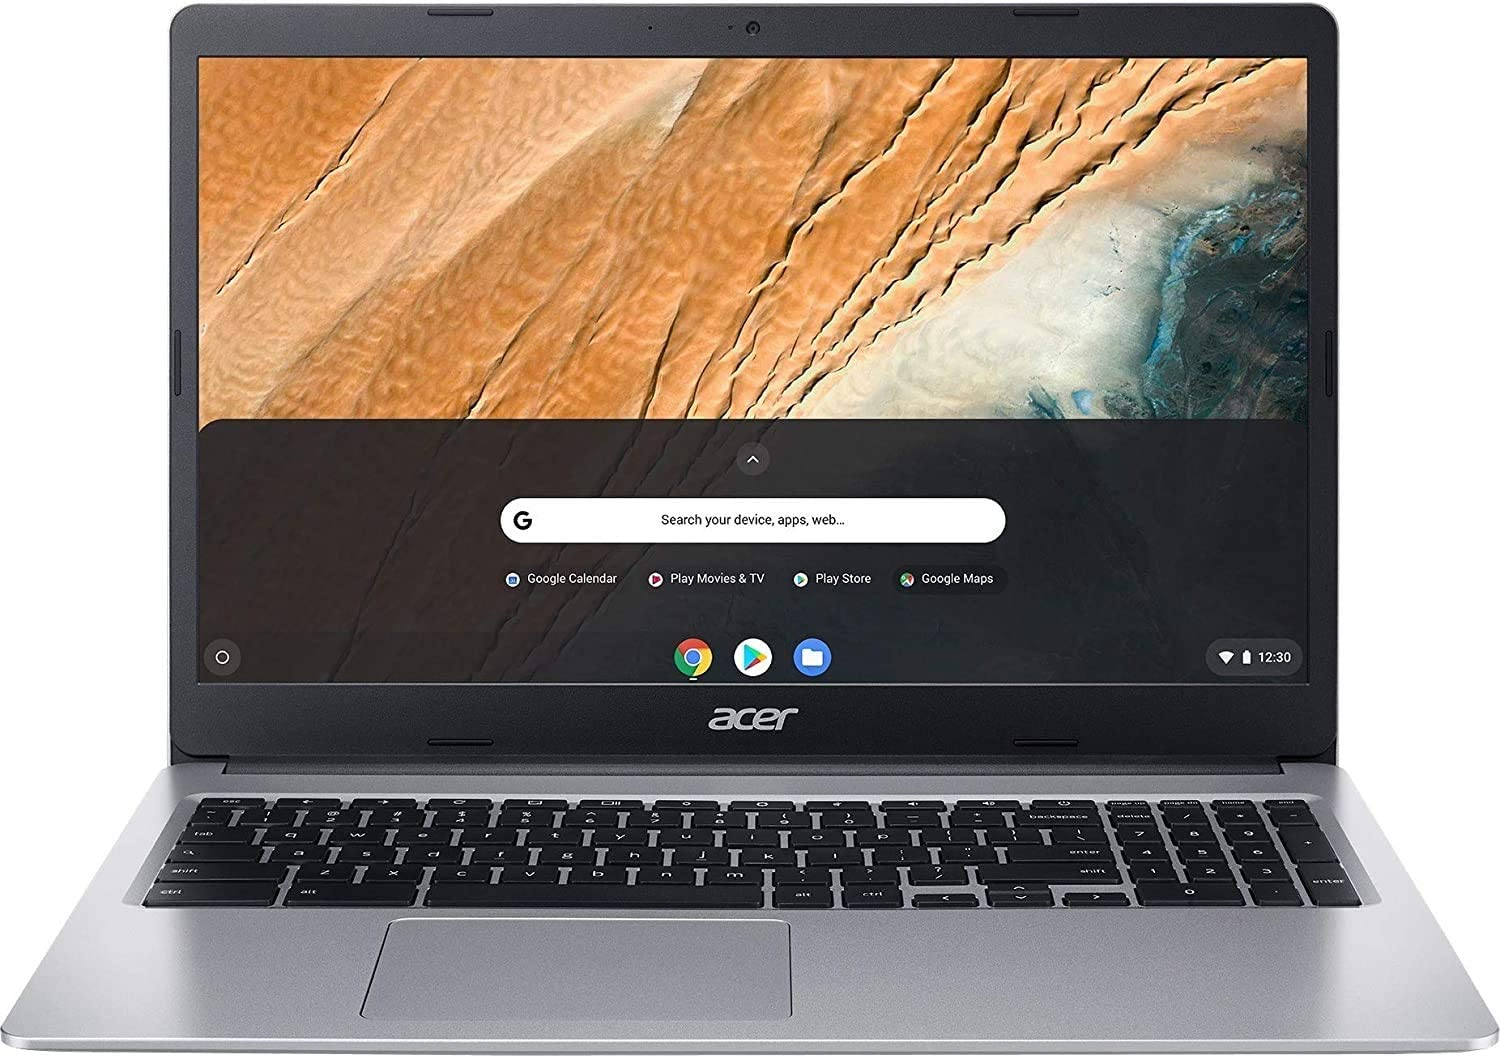 Acer 15.6inch FHD(1920x1080) IPS Touchscreen Chromebook, Intel Celeron Dual Core N4020 Processor Up to 2.80GHz, 4GB LPDDR4 RAM, 64GB SSD, Numeric Keypad, Chrome OS-(Renewed)